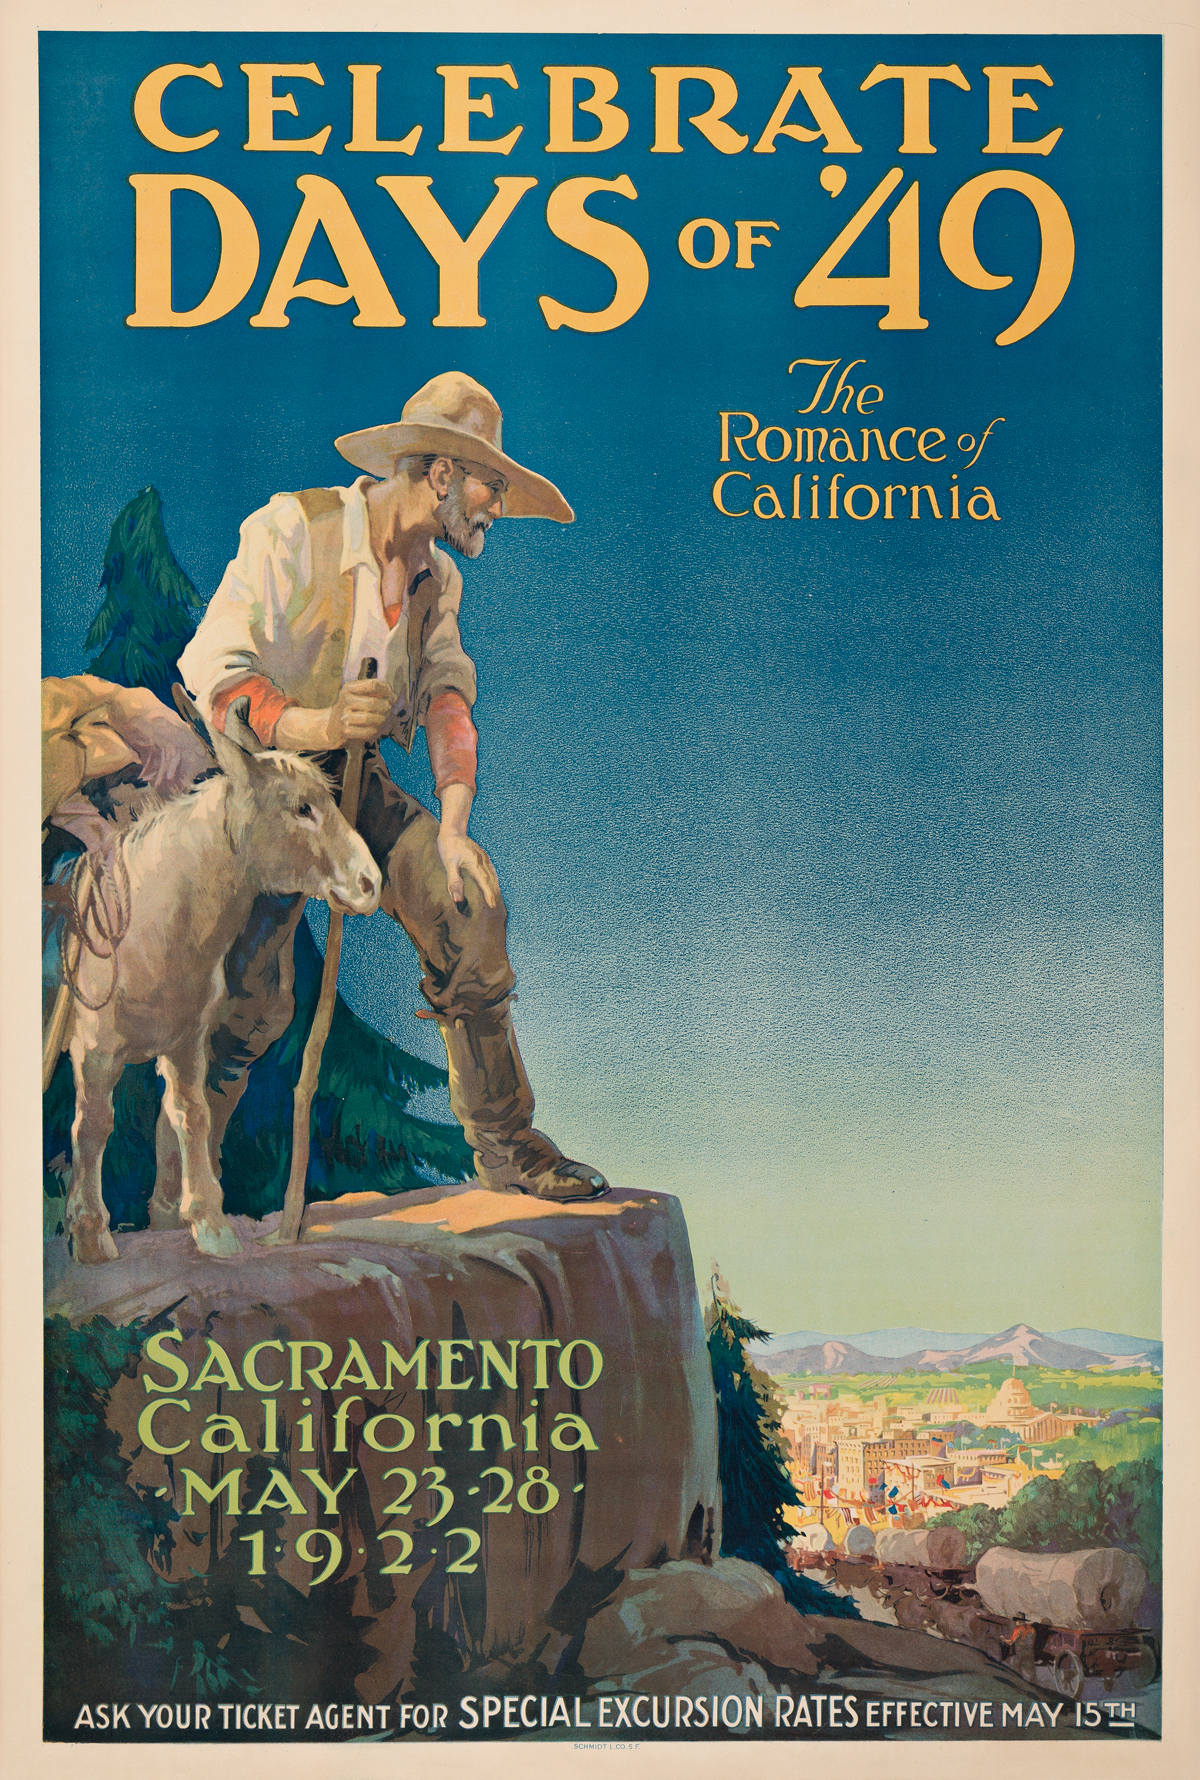 Designer Unknown.  CELEBRATE DAYS OF 49 / THE ROMANCE OF CALIFORNIA. 1922.